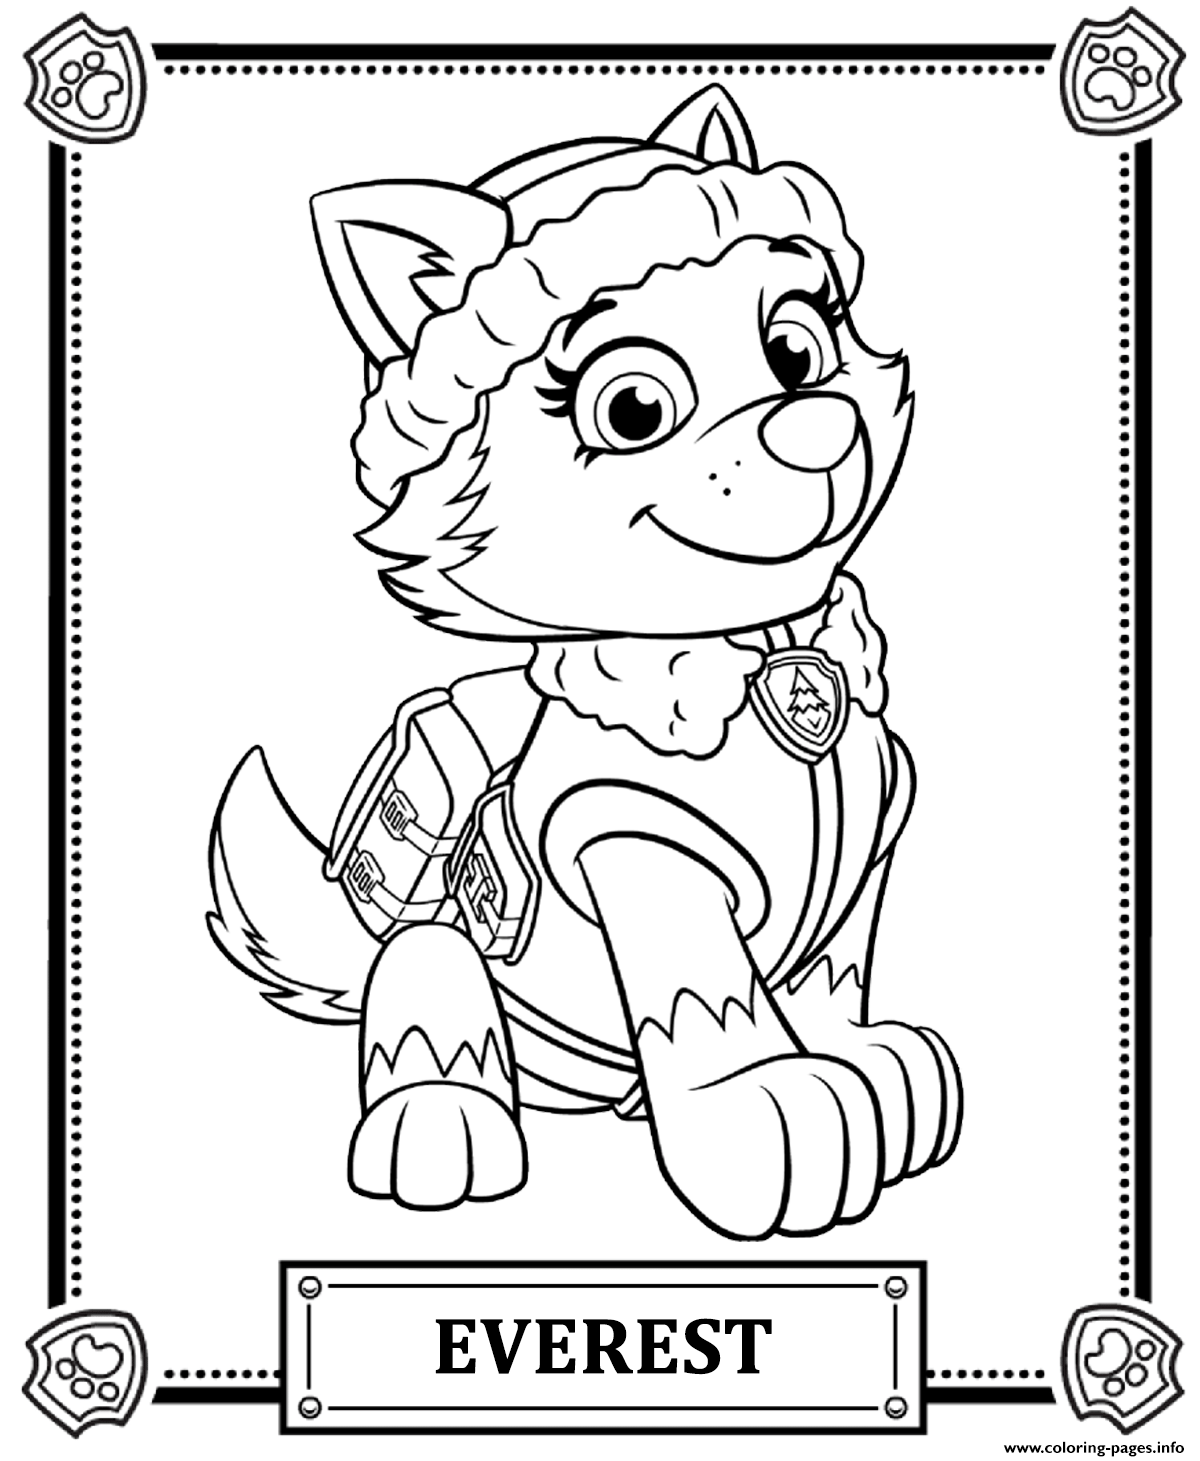 everest coloring page everest paw patrol coloring page youngandtaecom in 2020 coloring page everest